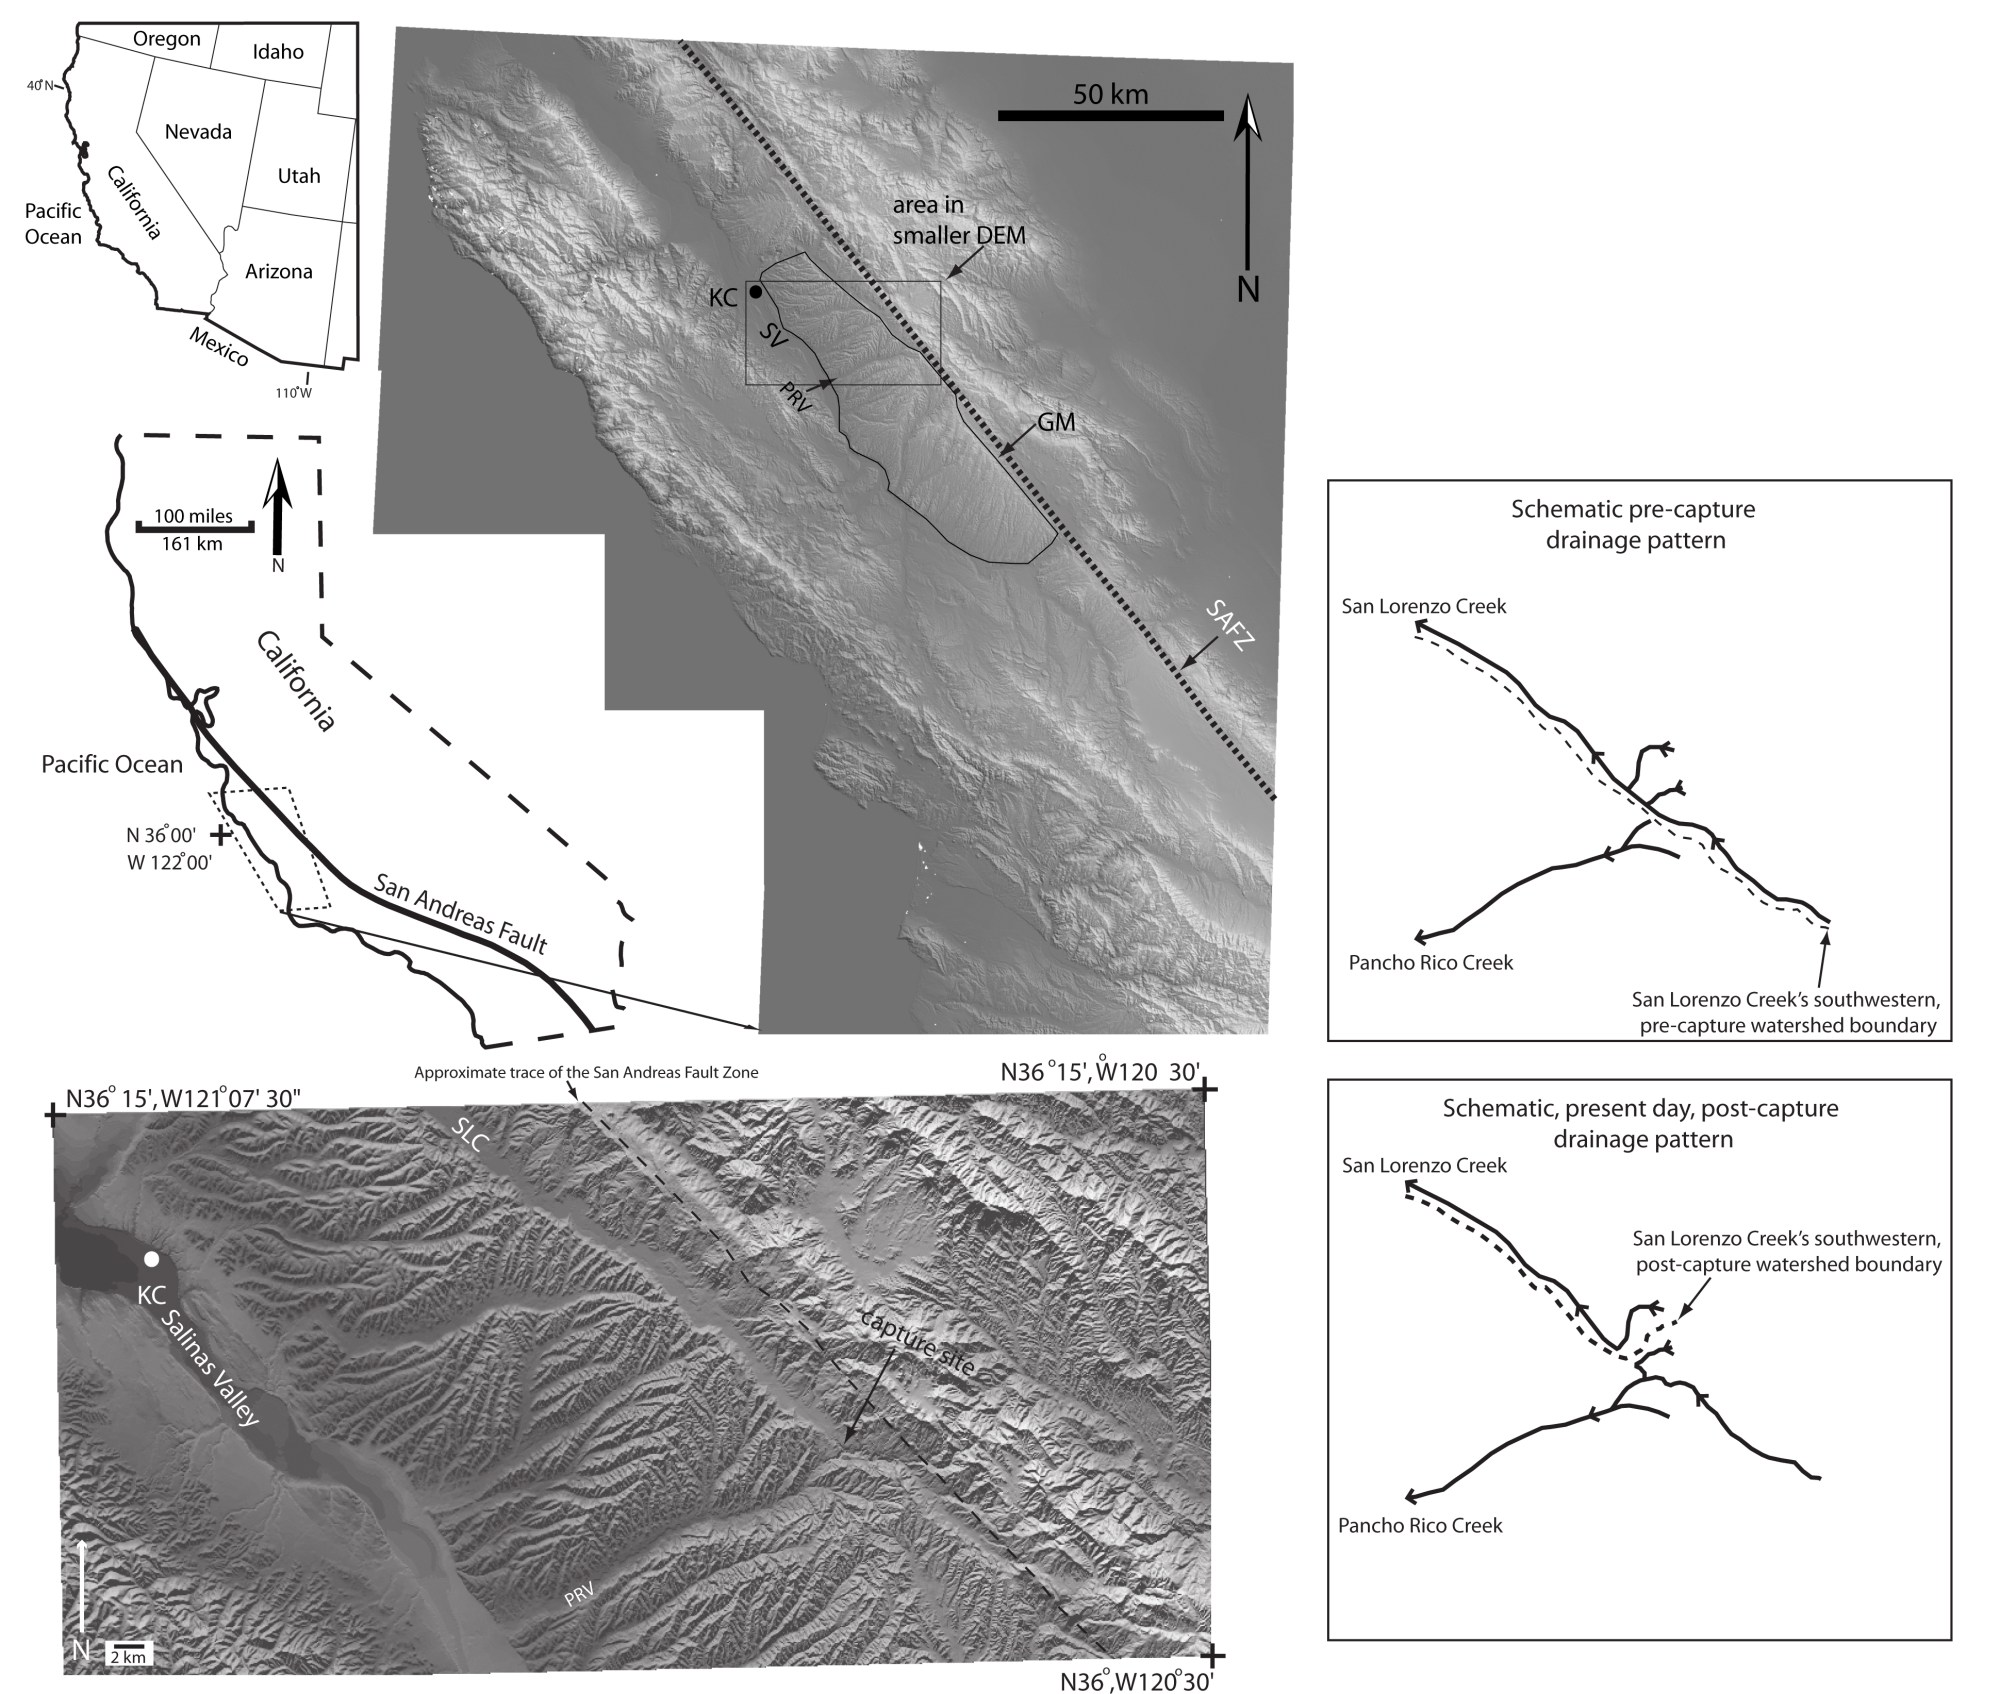 hight resolution of figure 1 location maps and digital elevation models dems of the central coast ranges of california and the gabilan mesa the dem covering the larger area